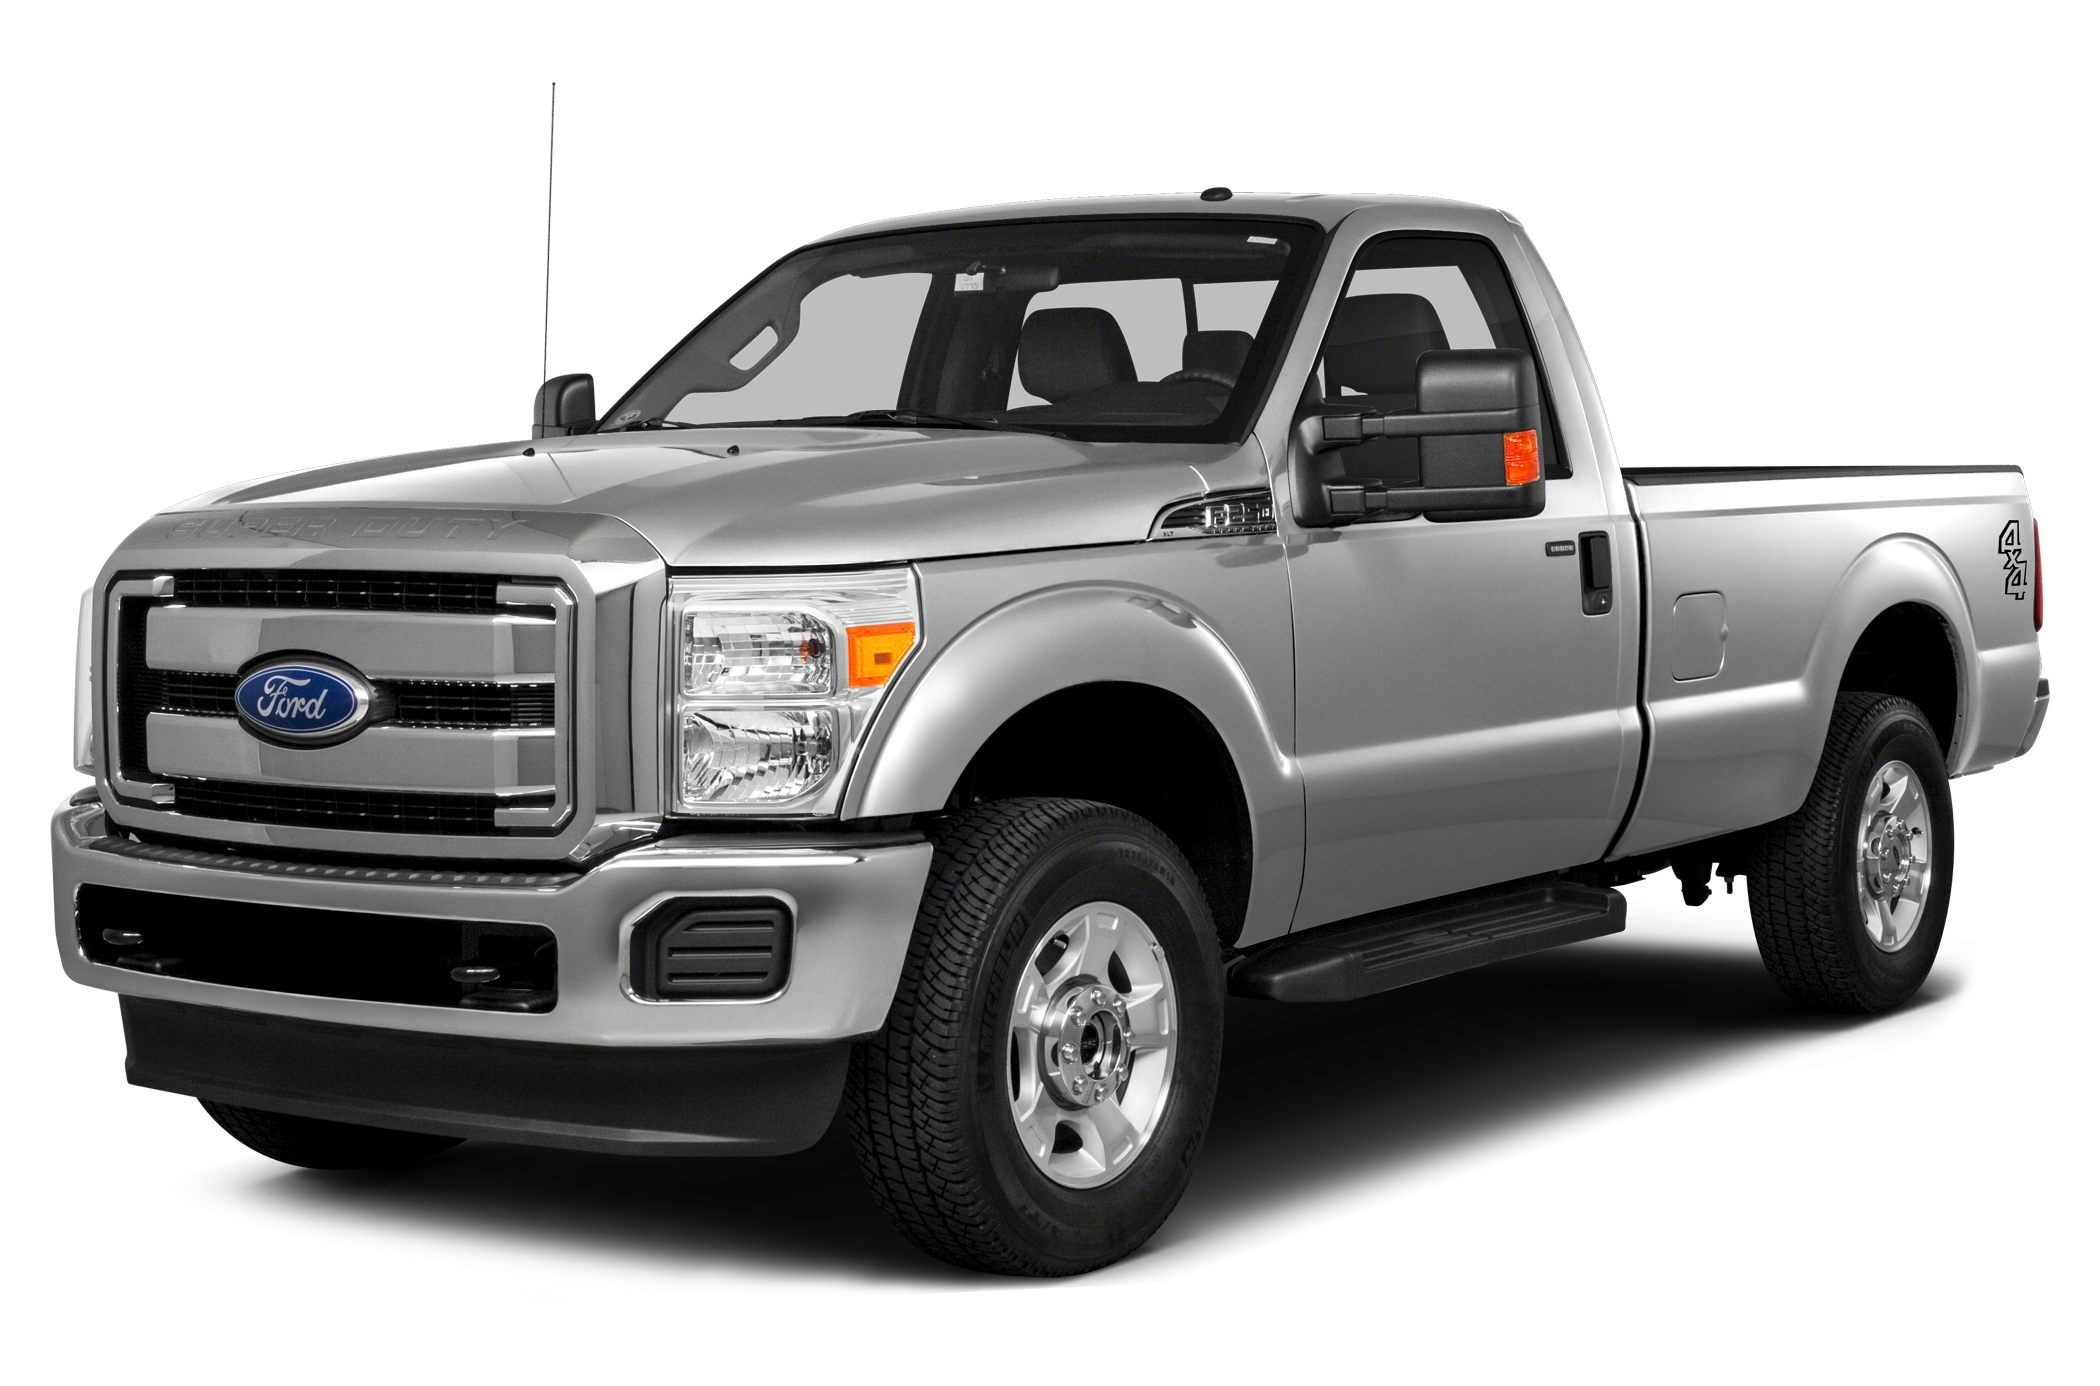 2011 ford F250 Upfitter Wiring 2016 ford F 250 New Car Test Drive Of 2011 ford F250 Upfitter Wiring